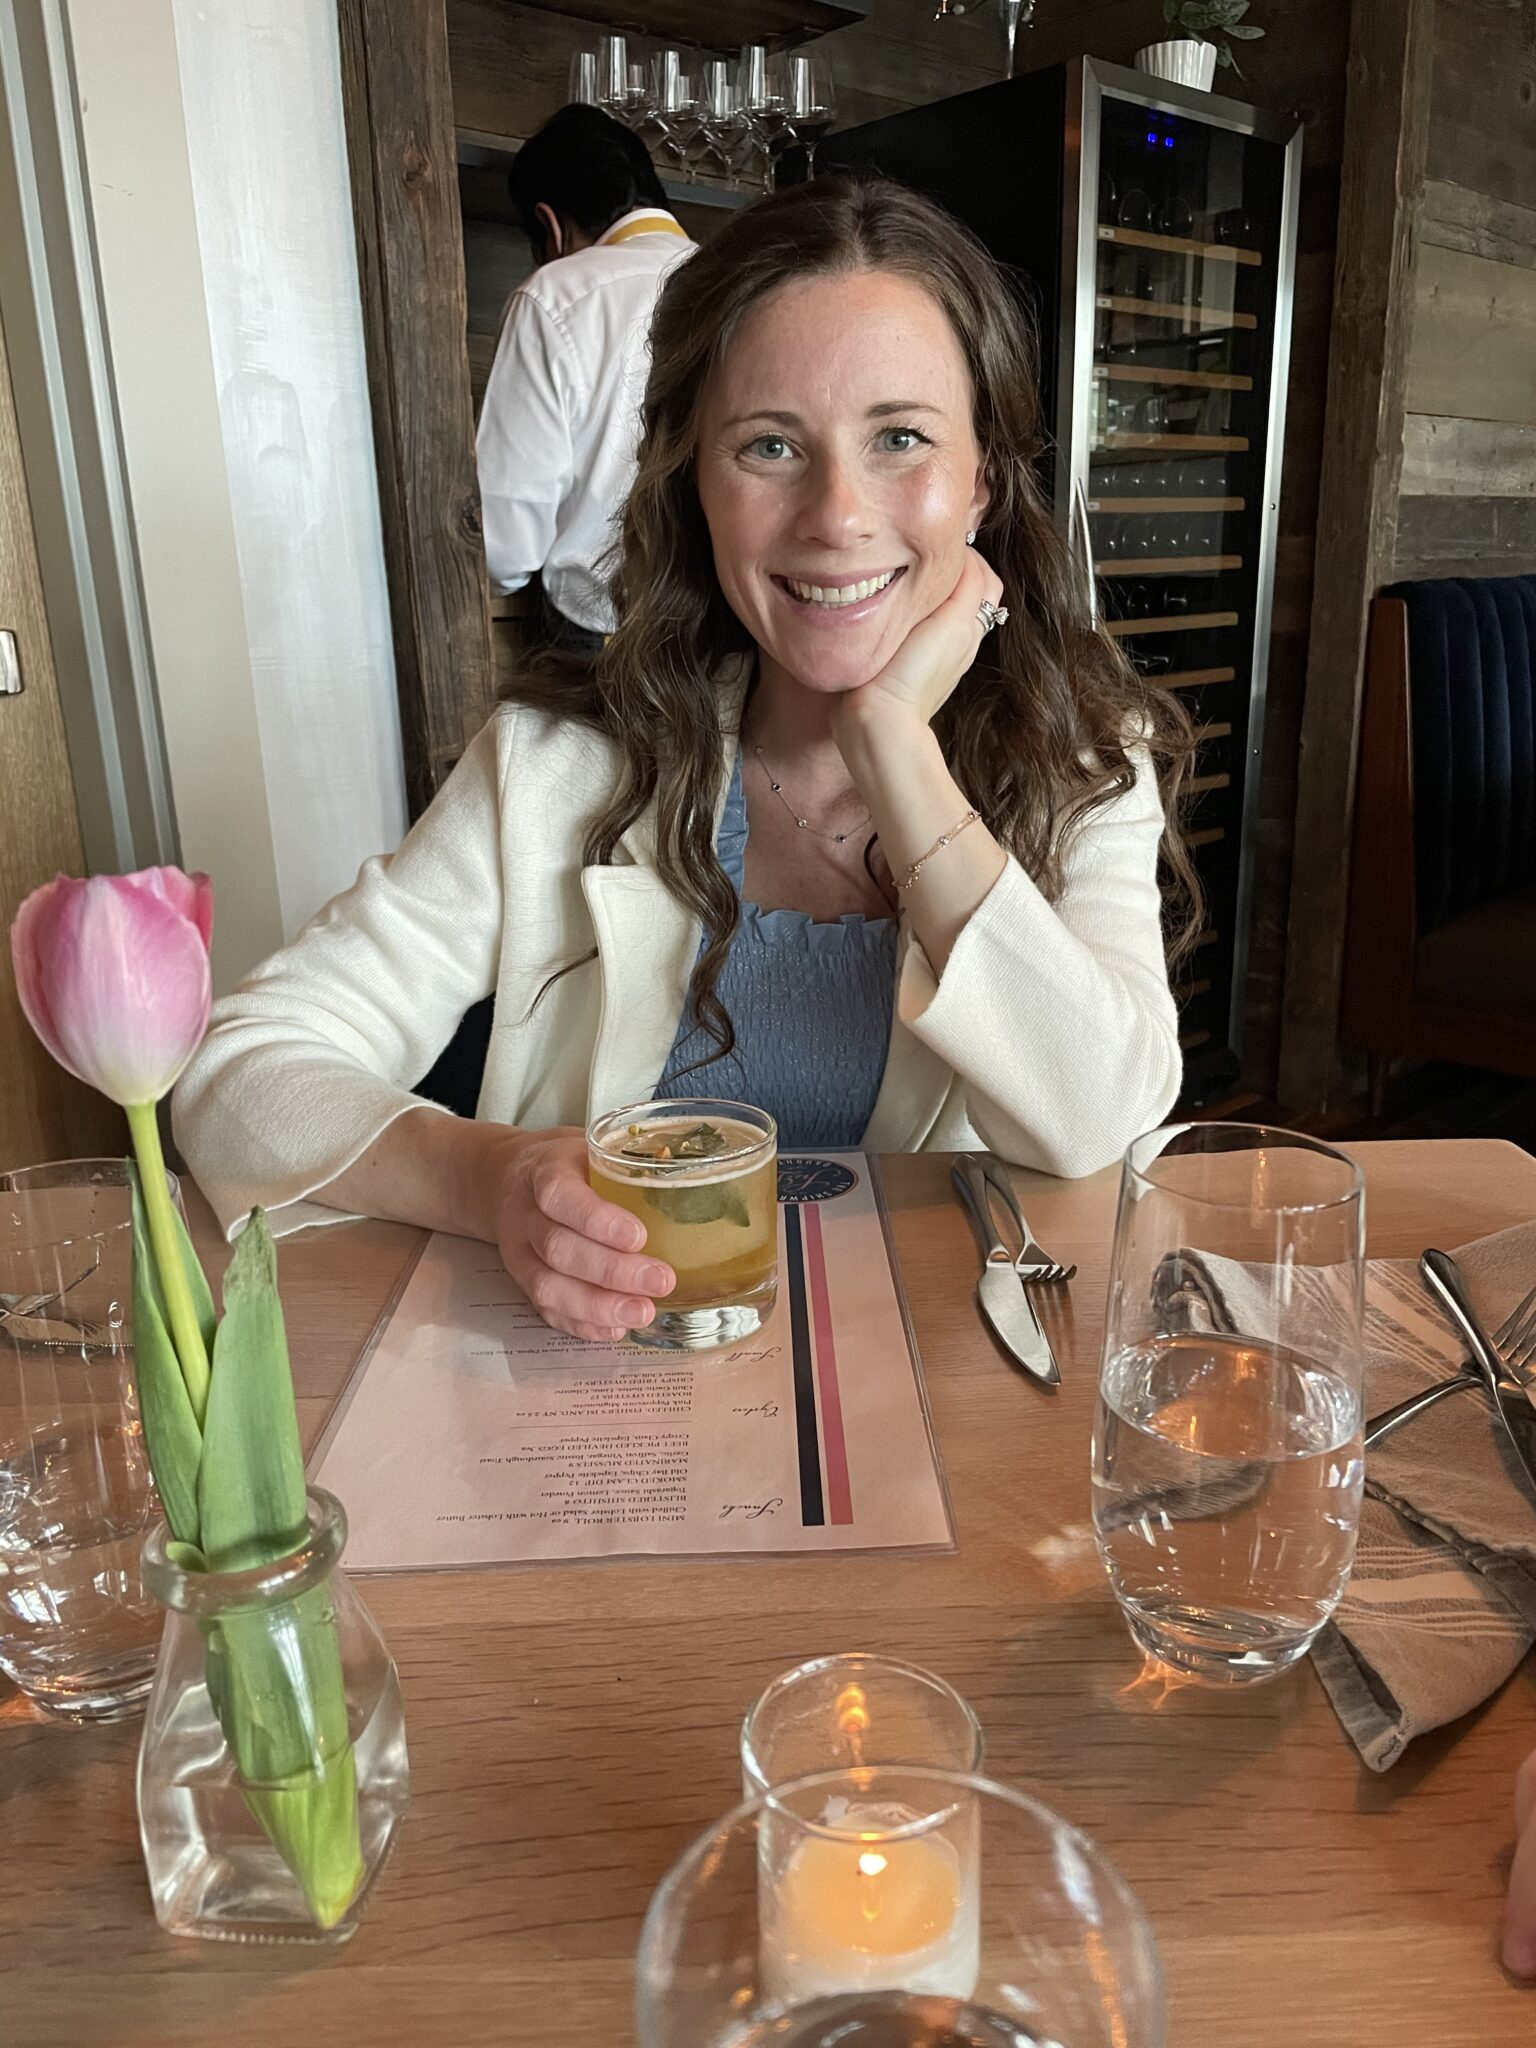 Caitlin Houston Shipwright's Daughter with cocktail The Pharmacist